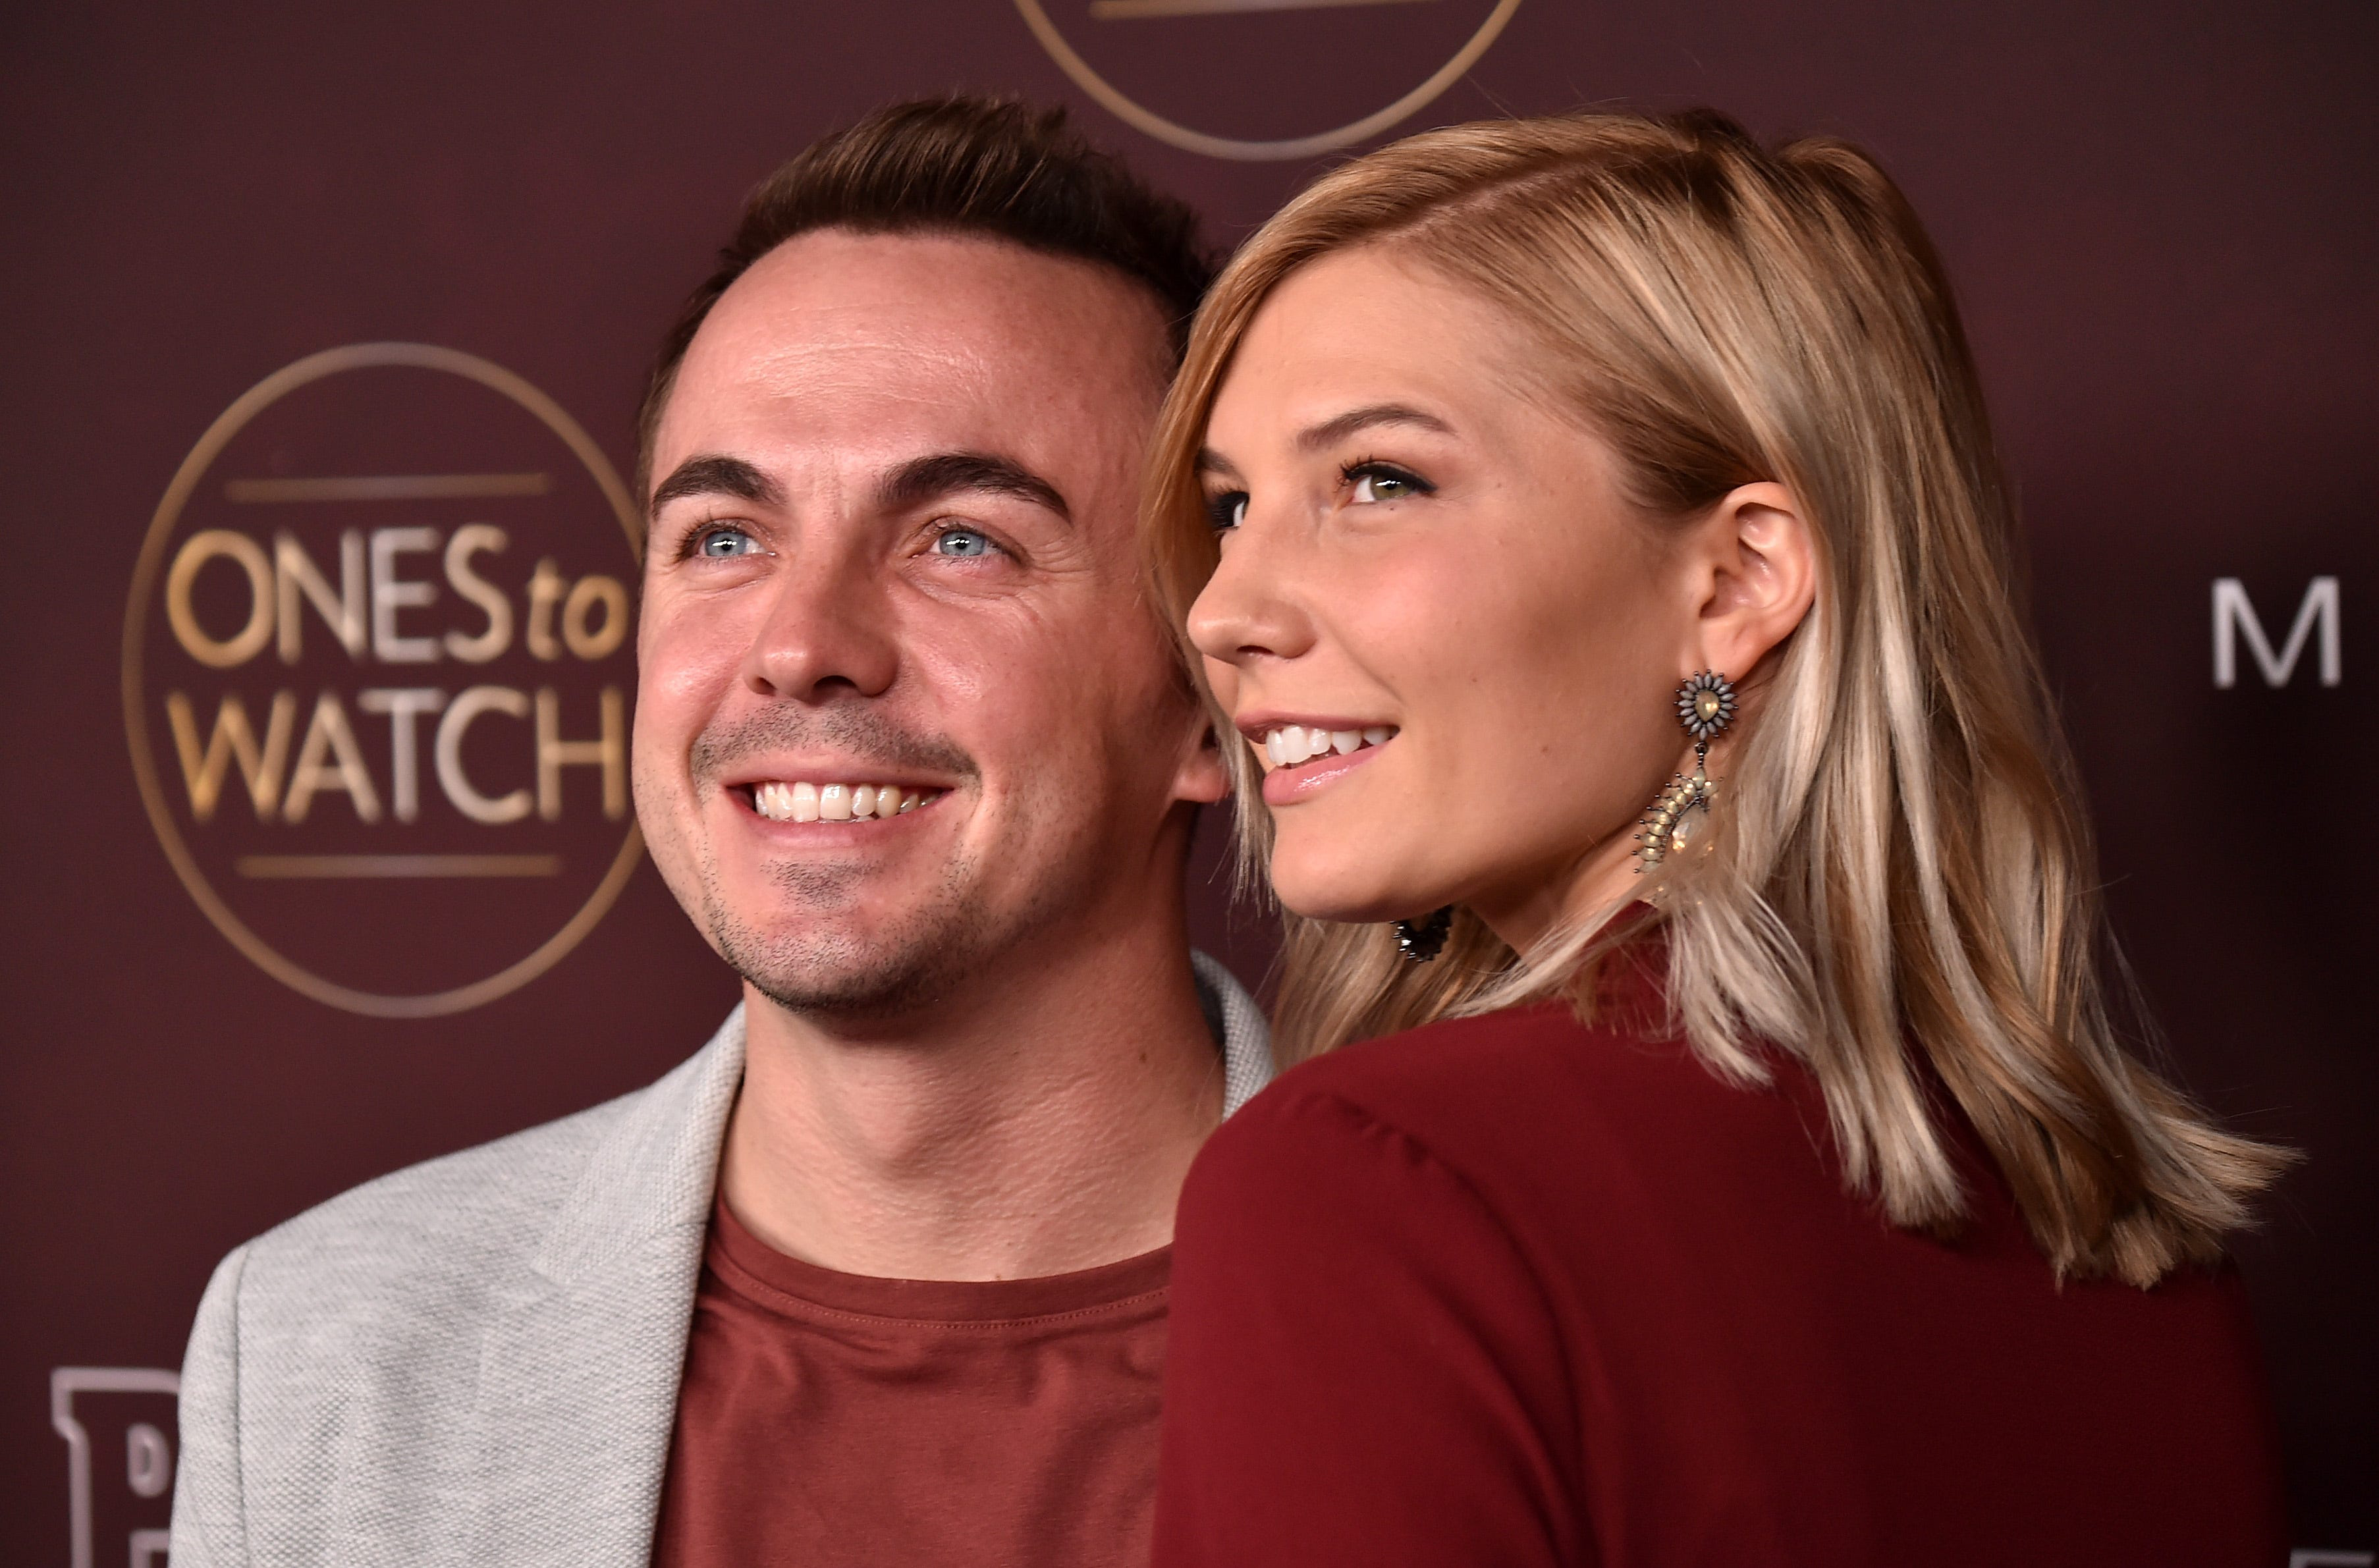 'Agent Cody Banks' Star Welcomes his Baby Boy into the World.